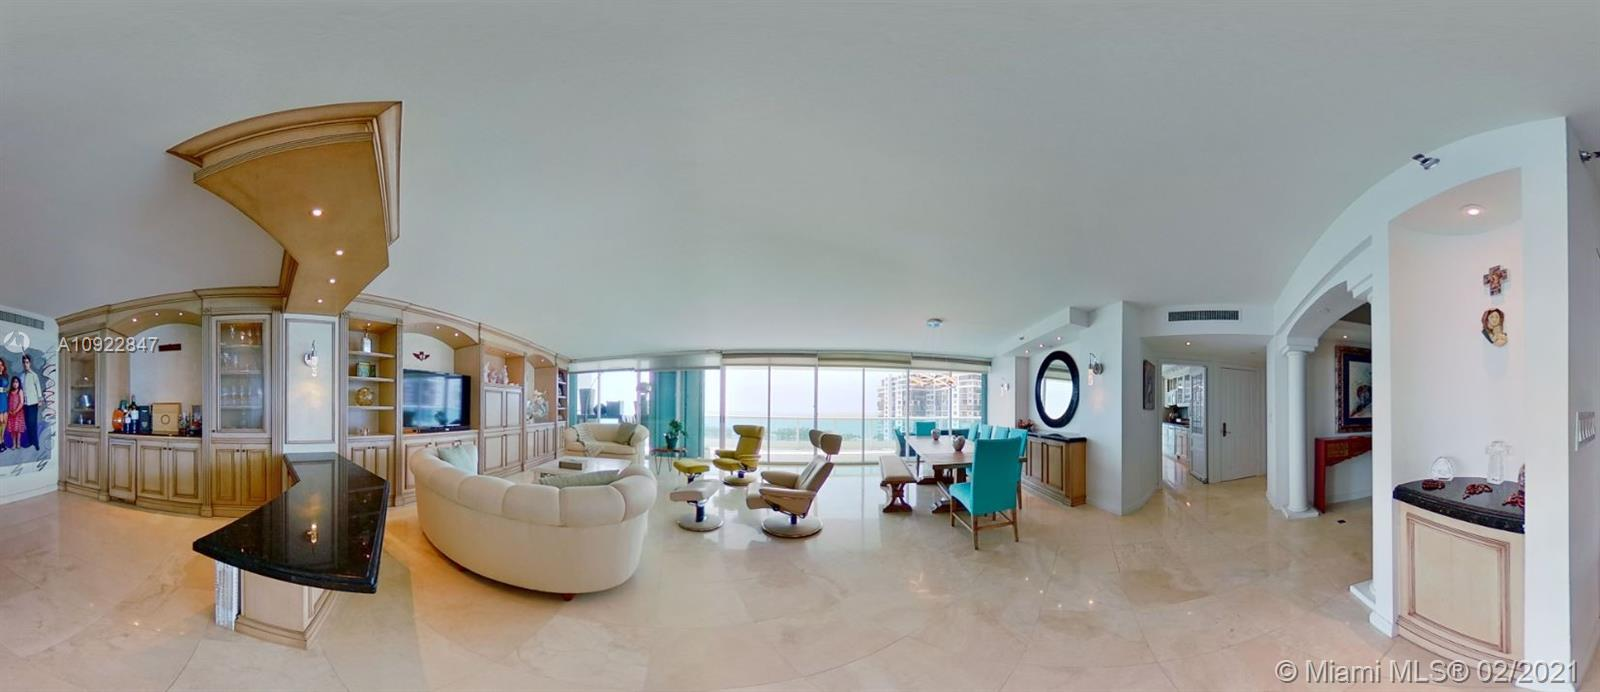 2127  Brickell Ave #2502 For Sale A10922847, FL